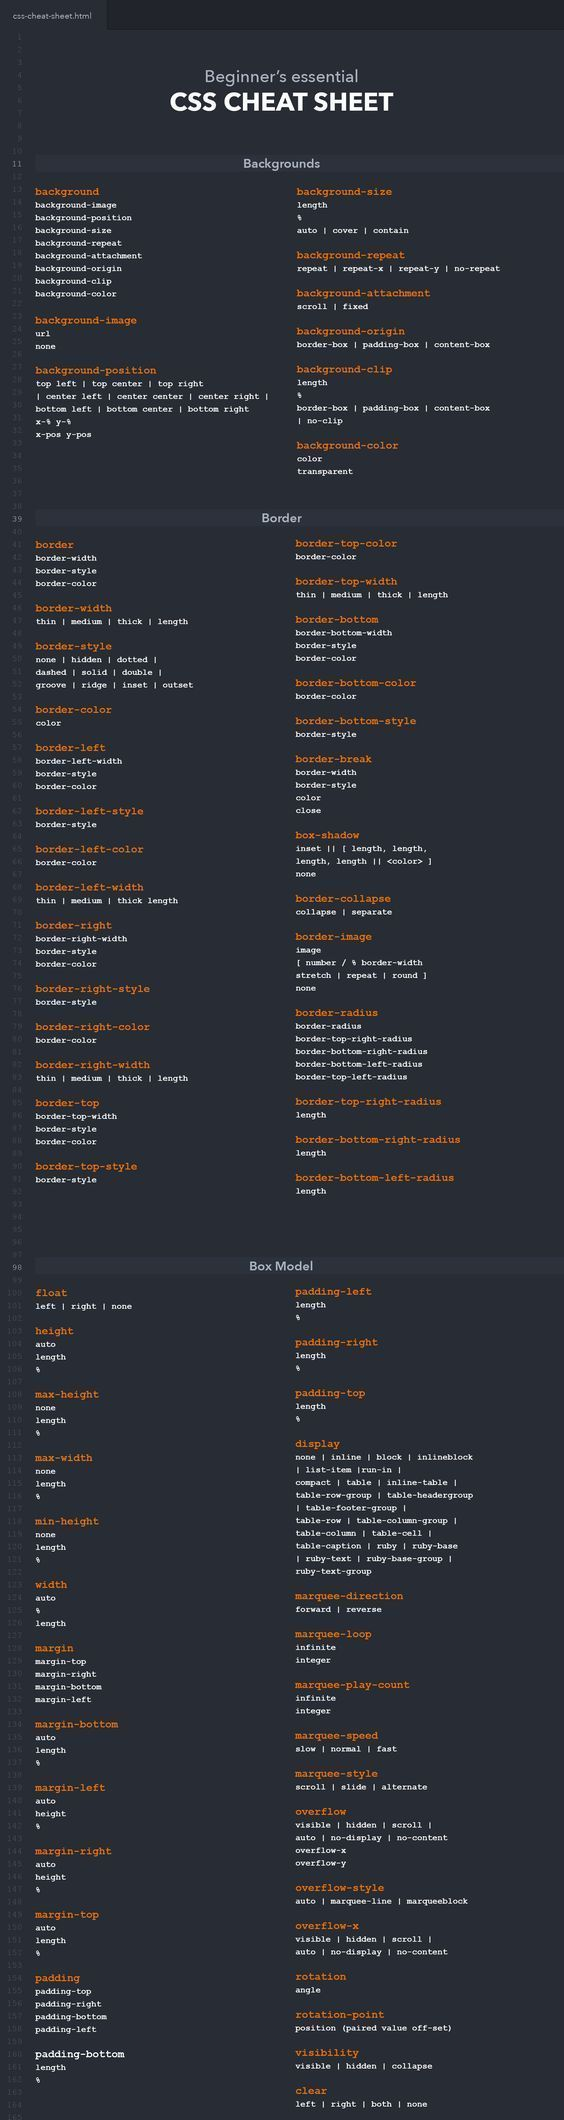 plete CSS Cheat Sheet with new CSS3 tags